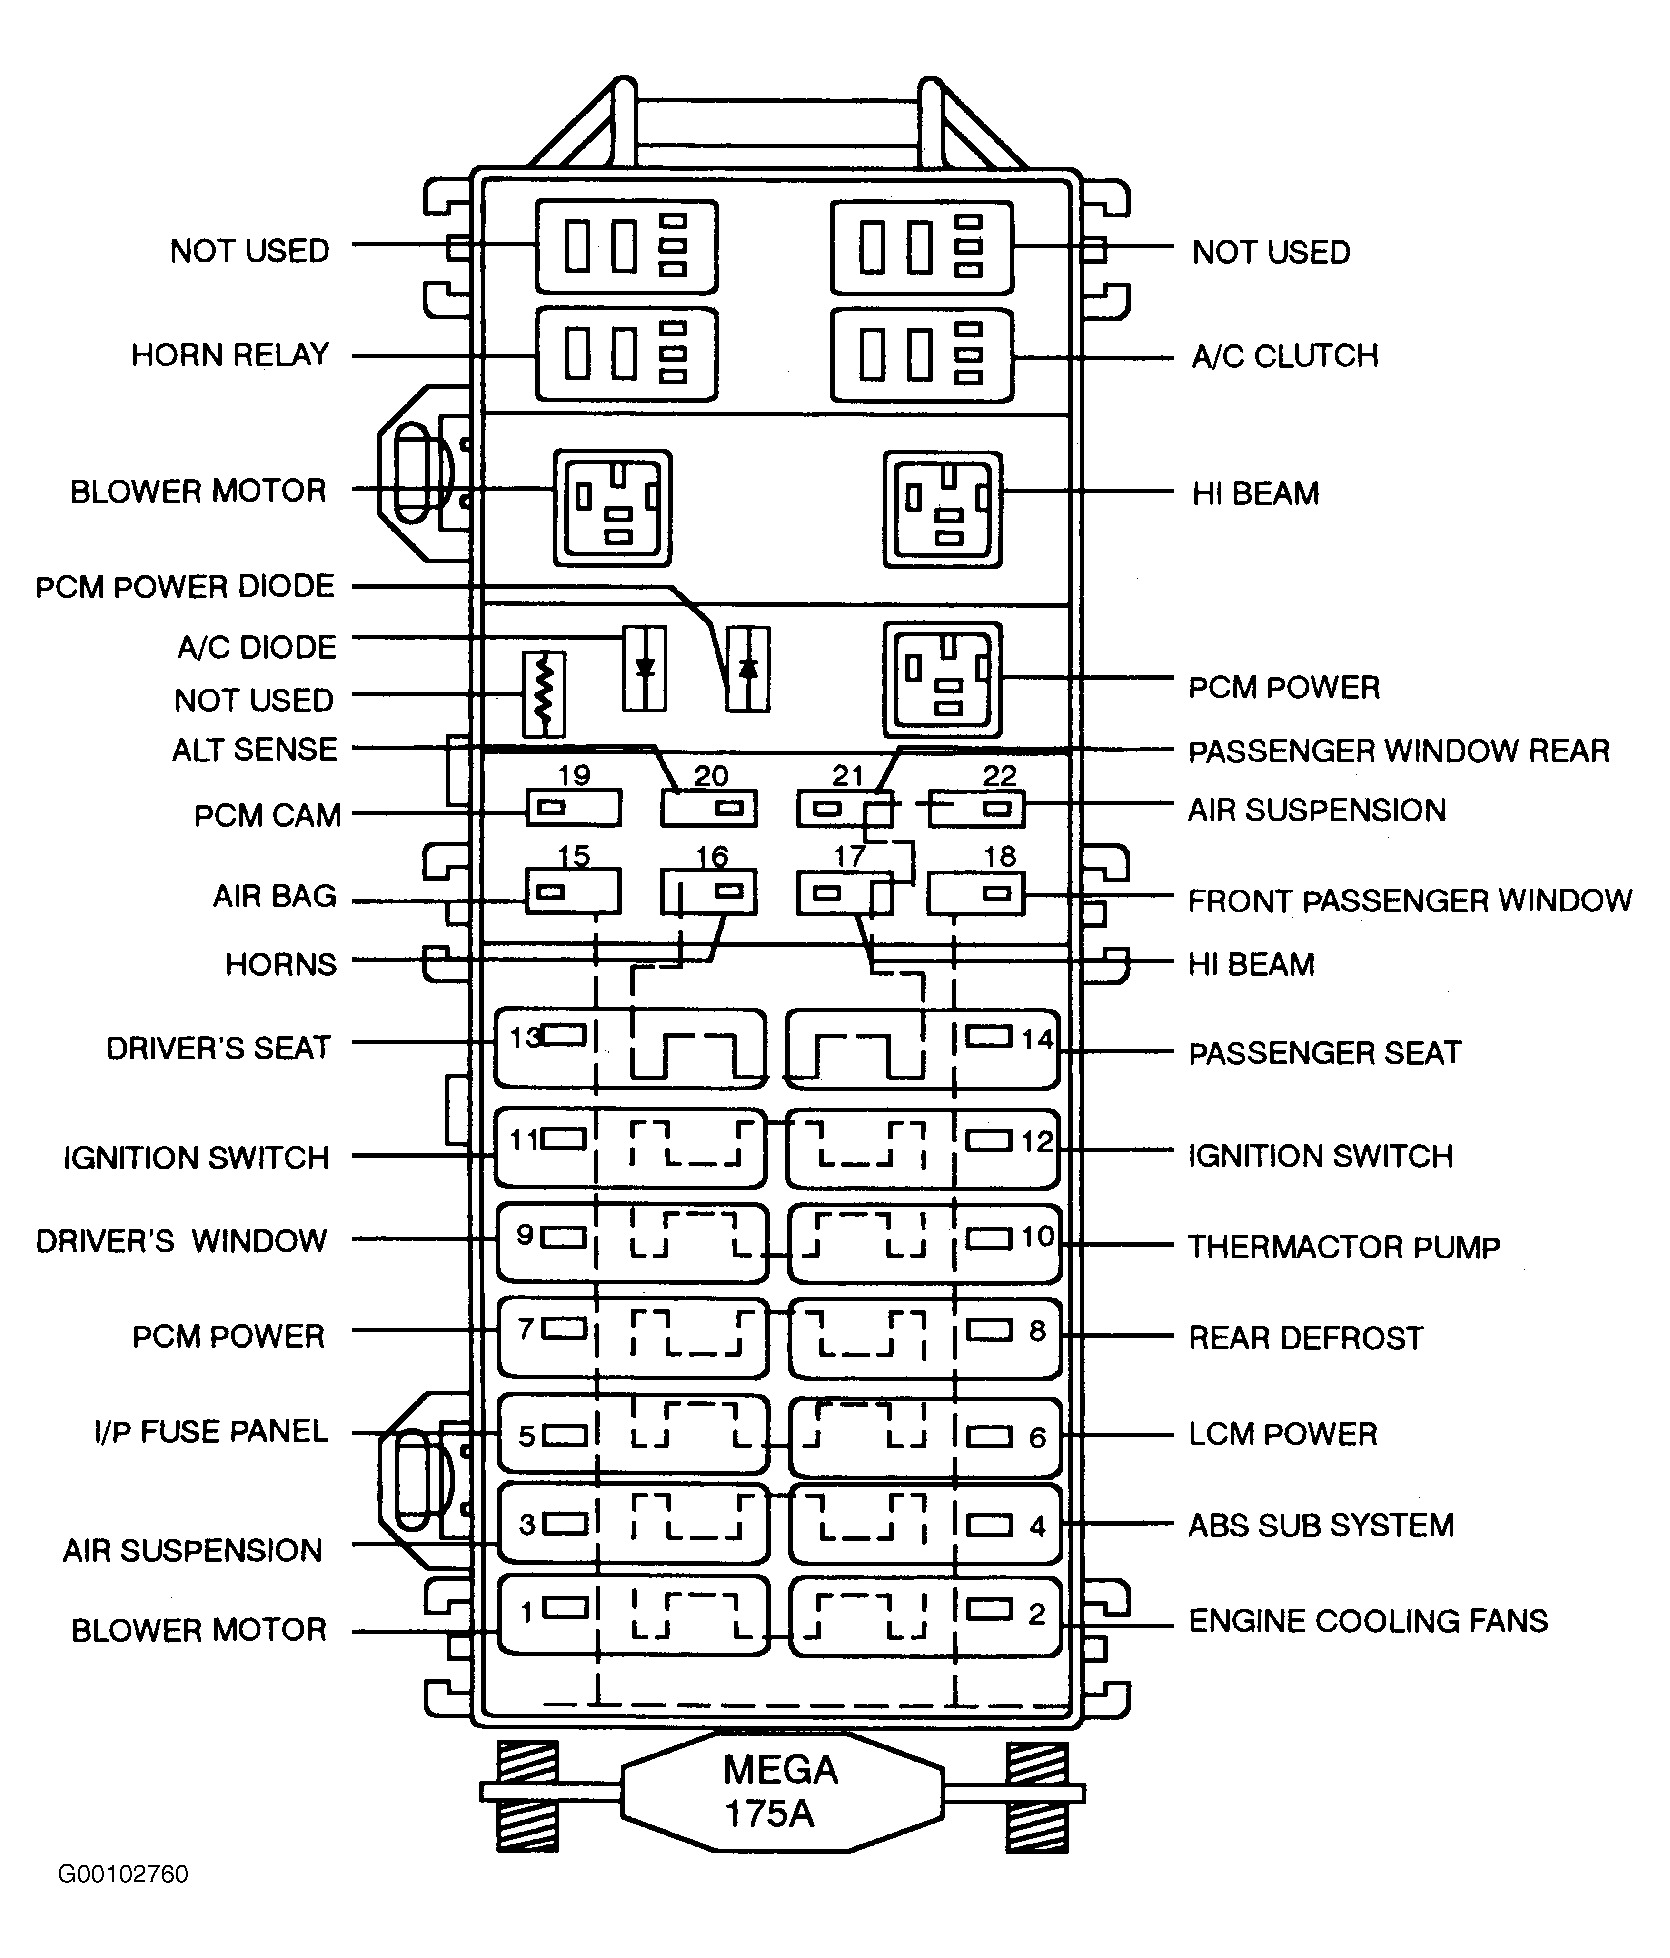 2001 Lincoln Continental Fuse Box Diagram : 41 Wiring